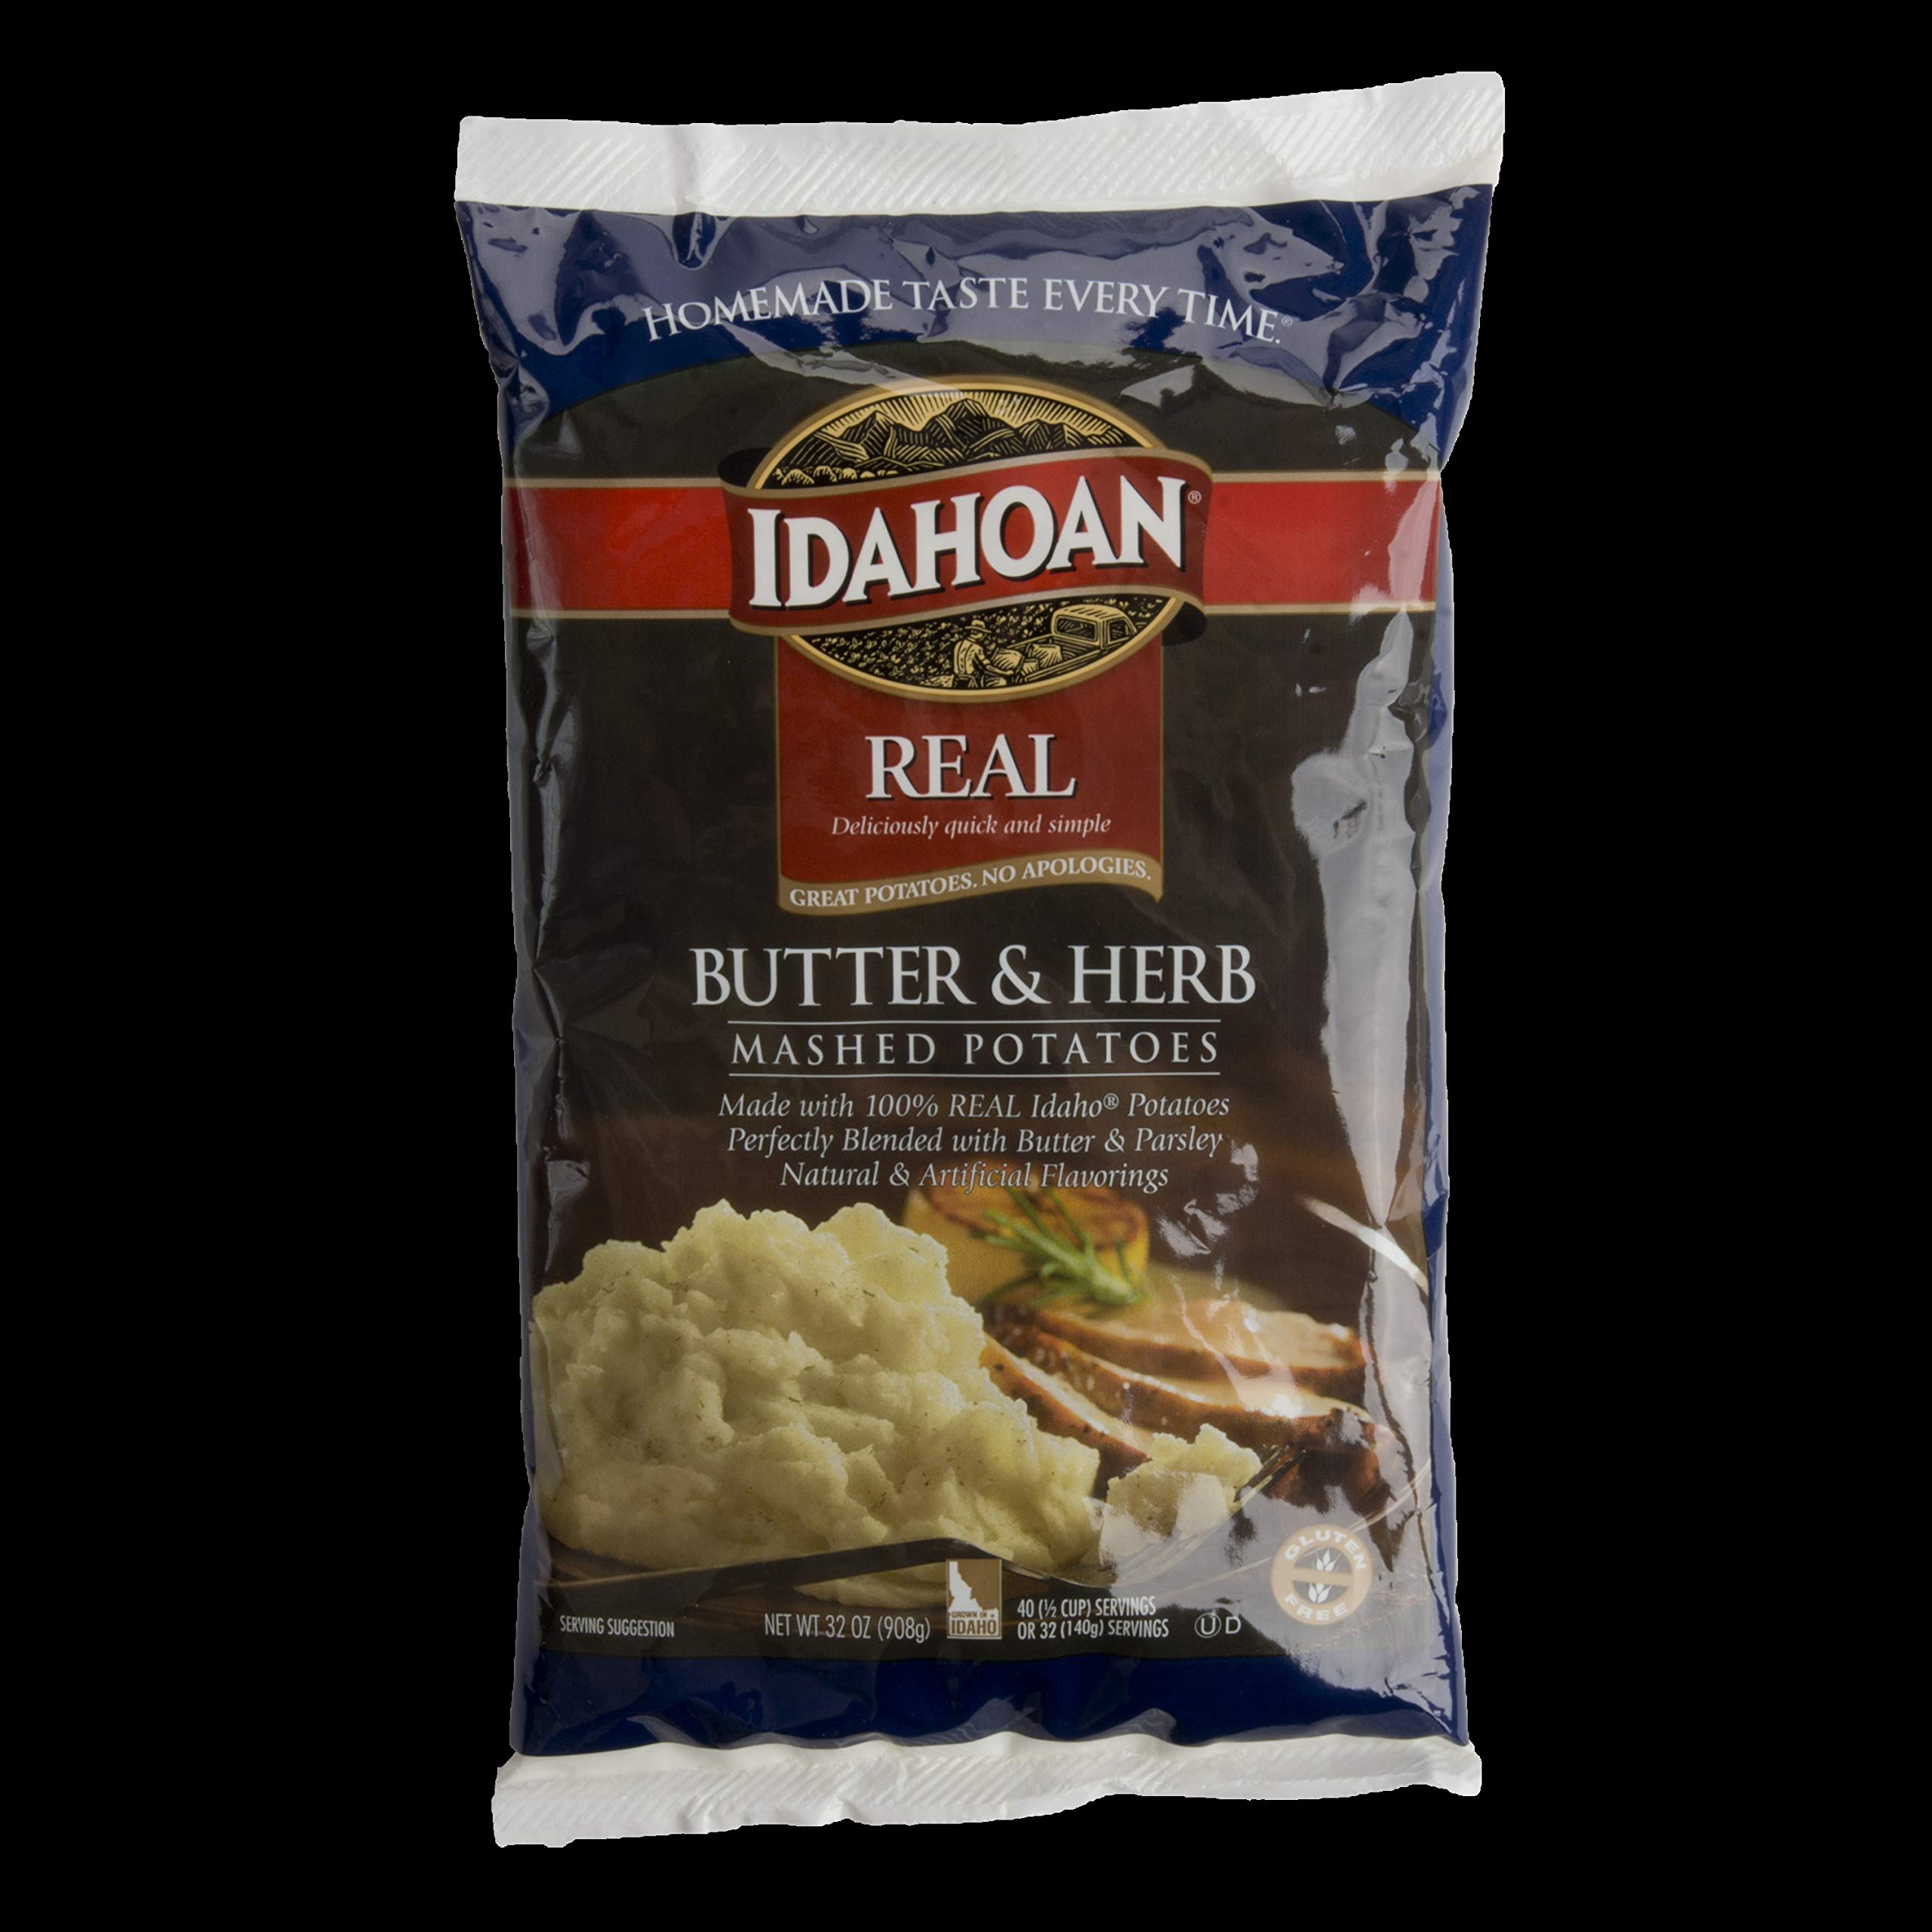 Idahoan Real Butter and Herb Mash Potatoes, 32 Ounce - 8 per case.